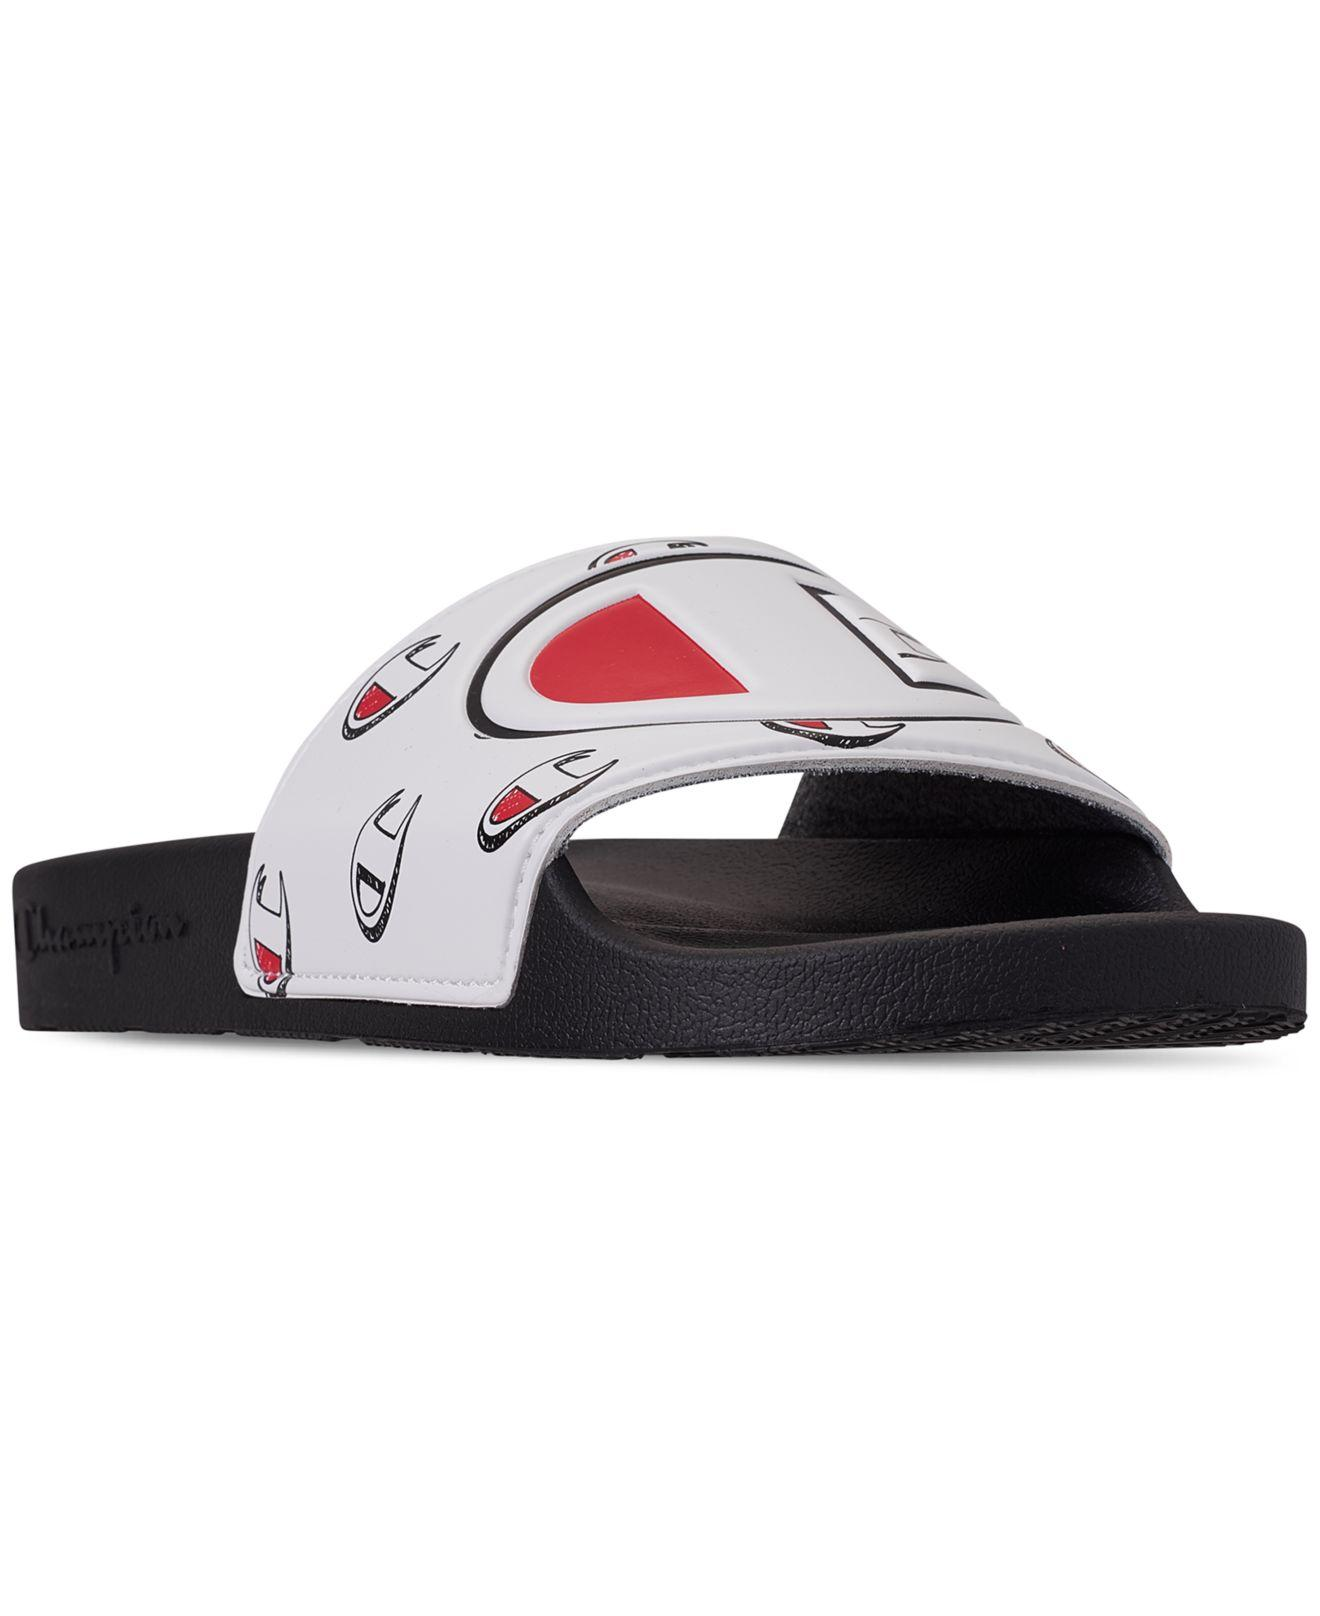 63181acef3db6 Lyst - Champion Ipo Repeat Slide Sandals From Finish Line in Black ...